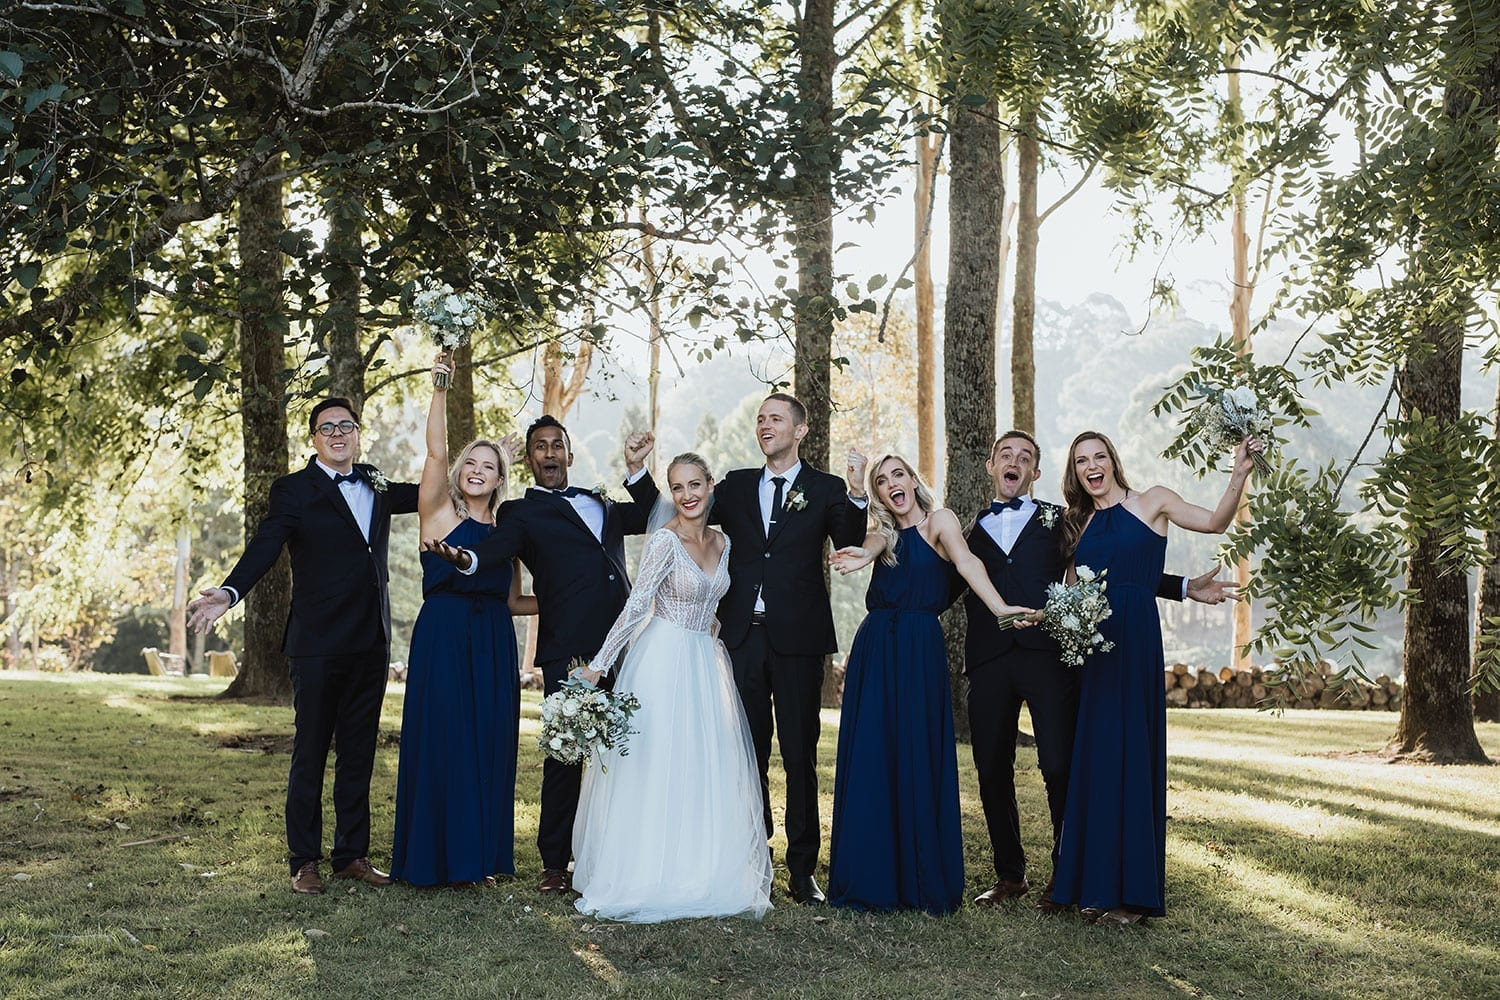 Vinka Design Features Real Weddings - Bride in custom made gown with bold lace bodice with fitted, long, beaded lace sleeves and floating skirt. With bridal party in wooded area posing